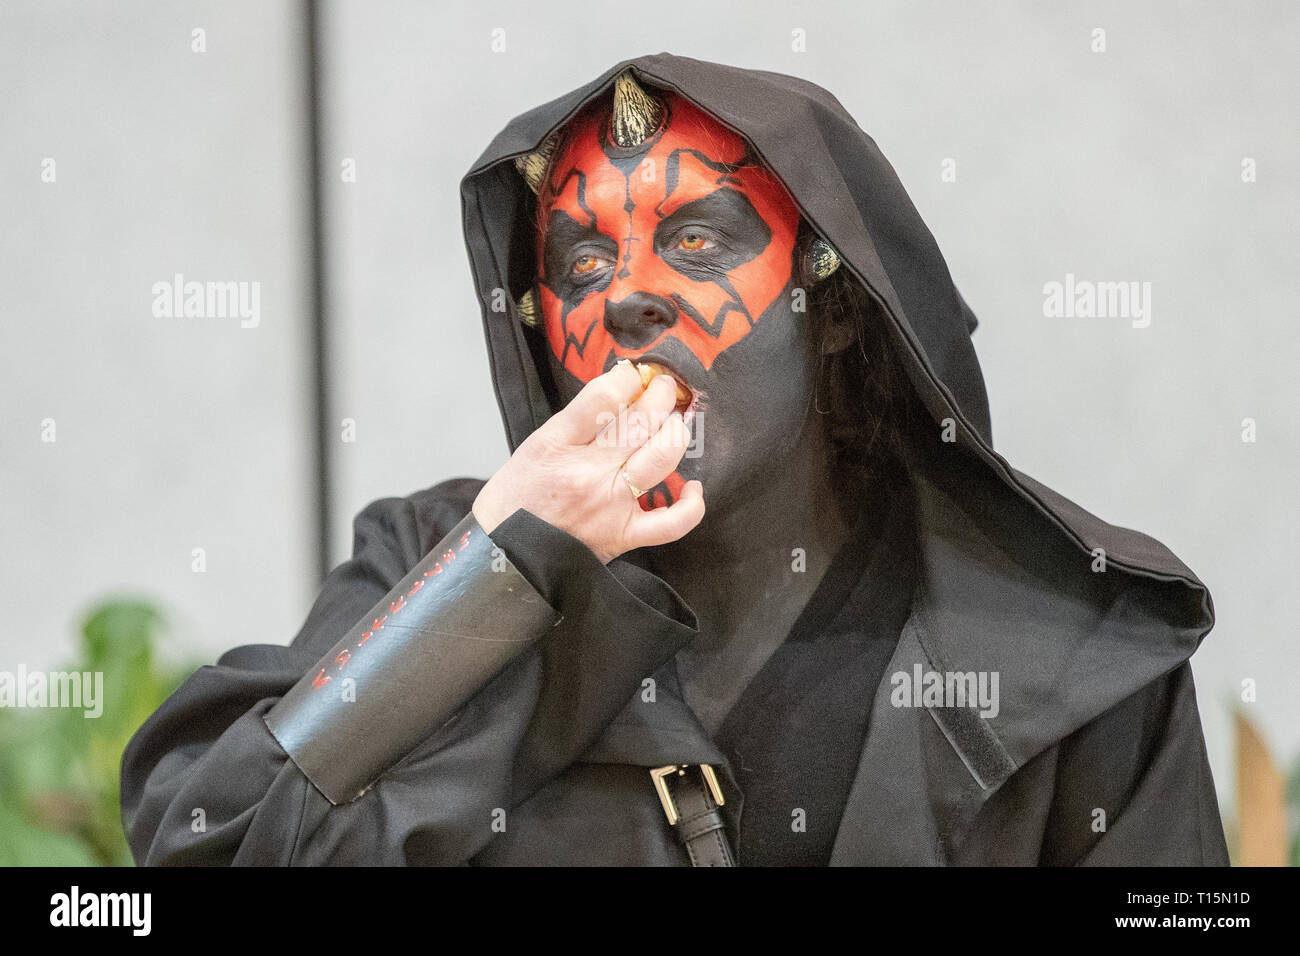 Birmingham, UK. Saturday 23 March 2019. Darth Maul Cosplayers seen eating a burger in character on the 1st day of the MCM Comic Con Birmingham at the NEC  , © Jason Richardson / Alamy Live News - Stock Image